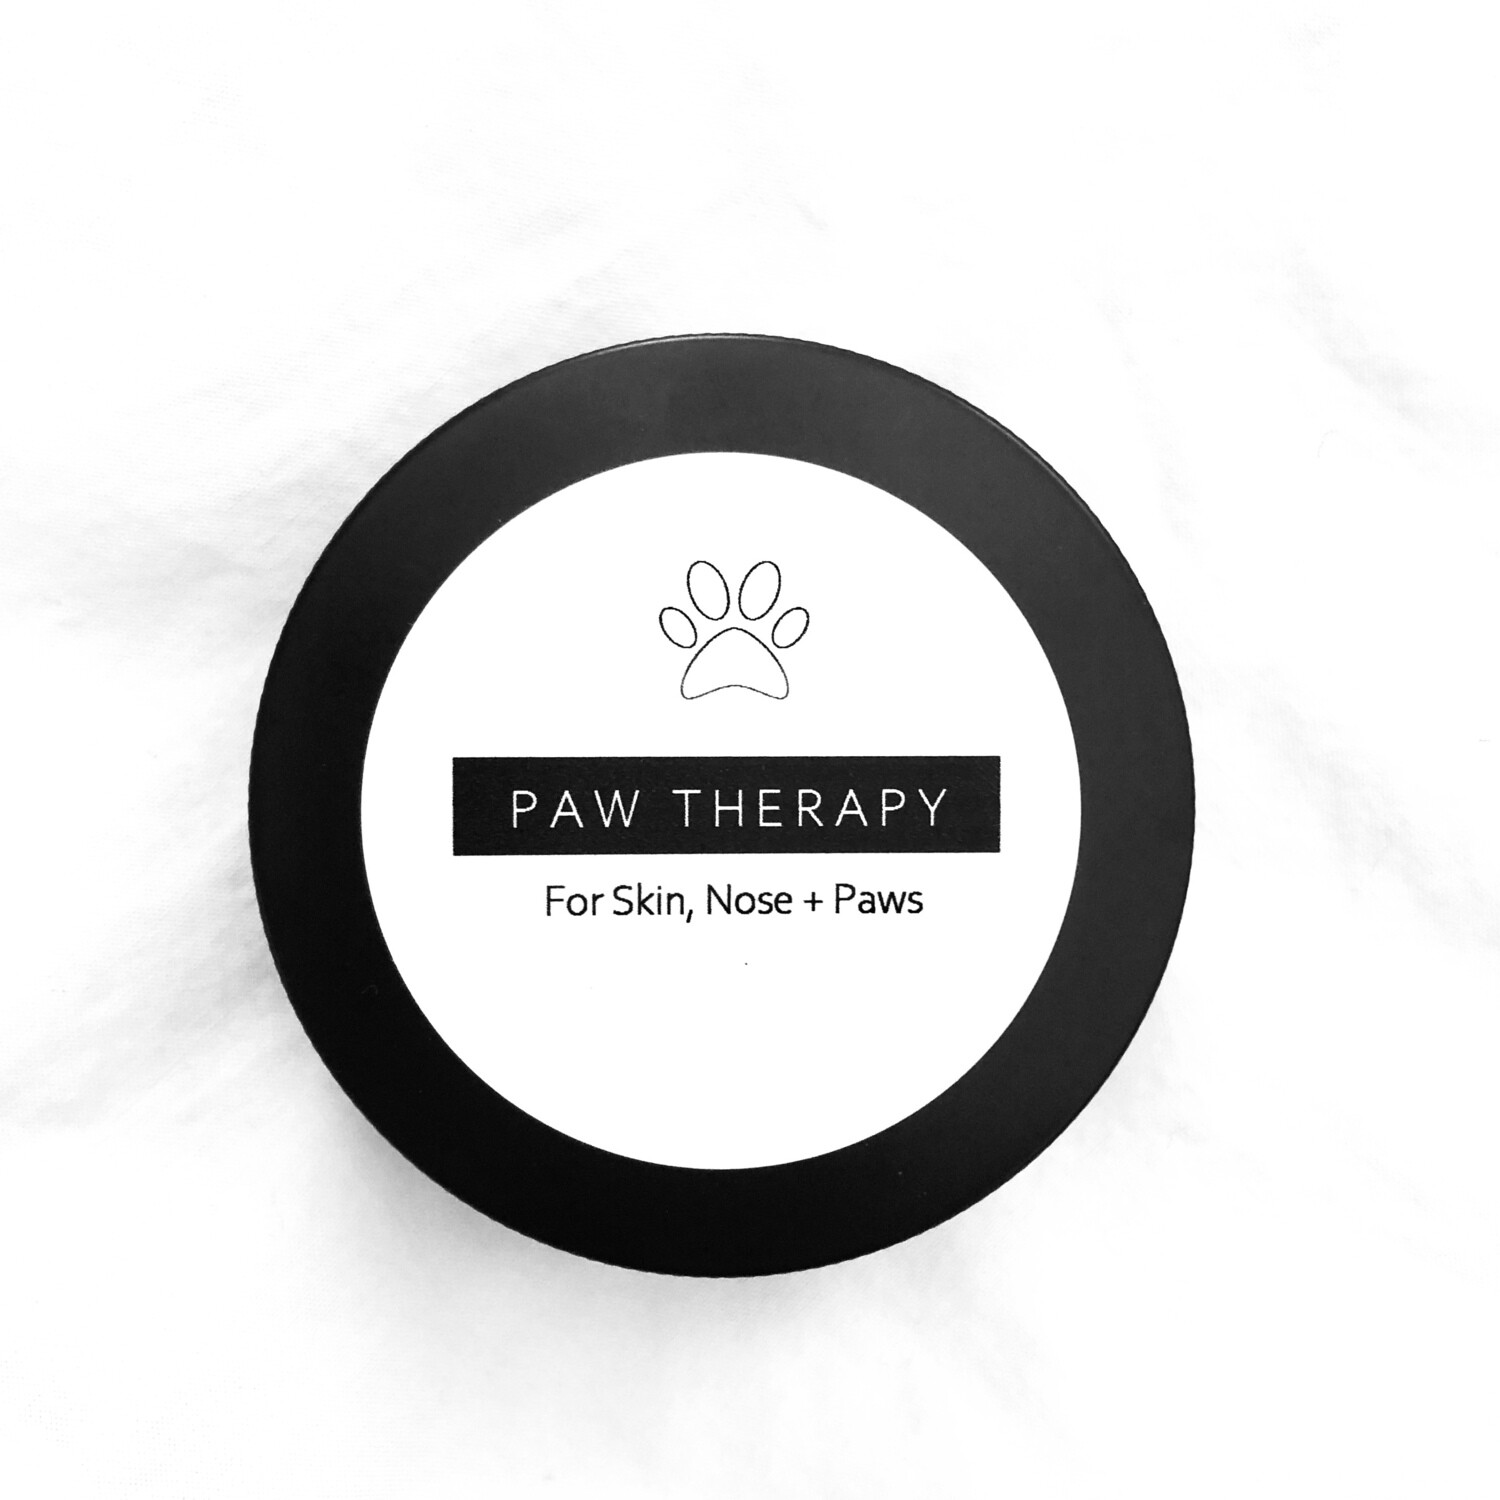 PAW THERAPY